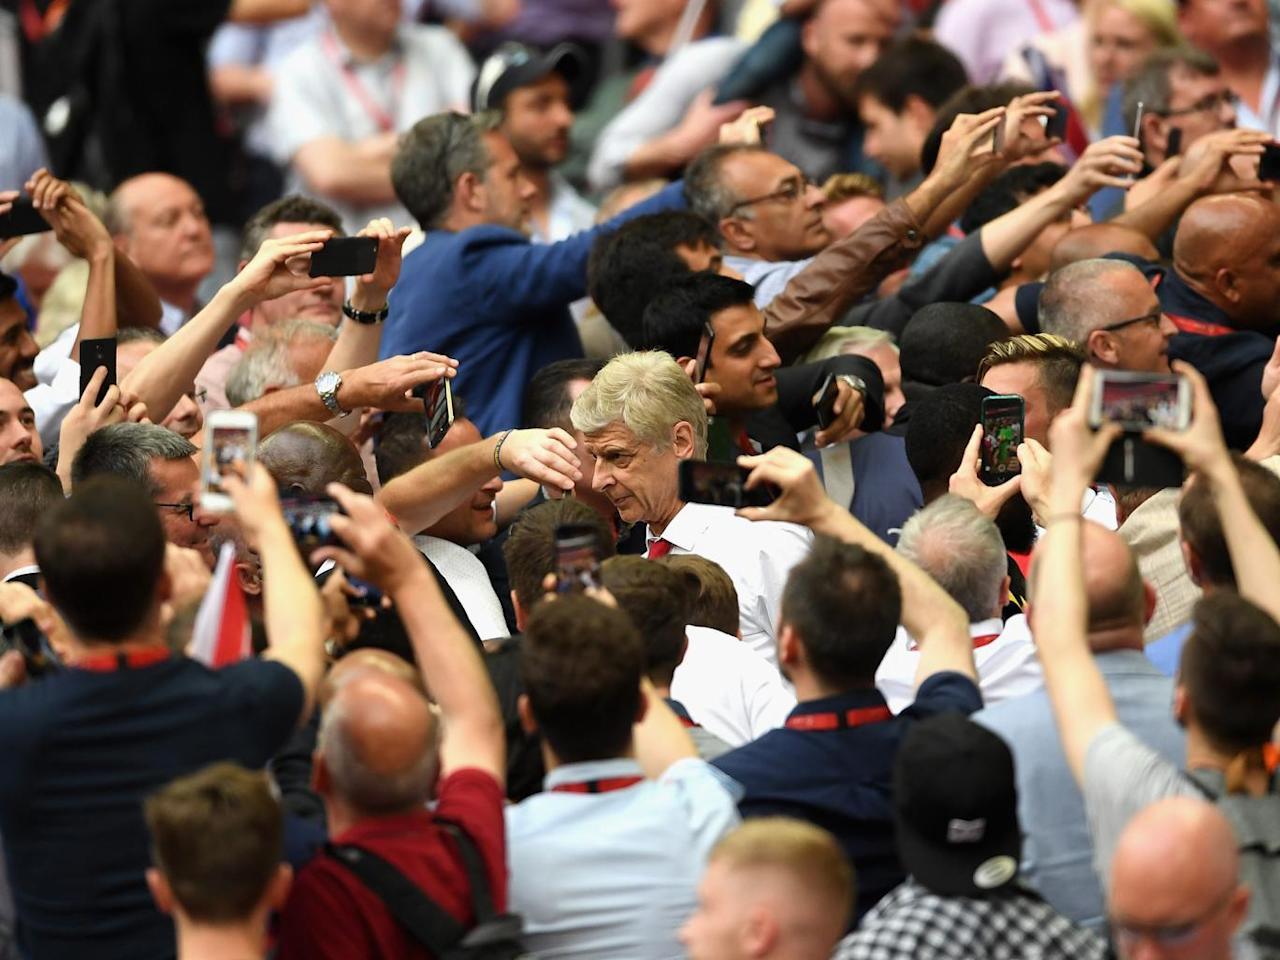 Arsene Wenger's Arsenal future remains uncertain, but he can at least enjoy himself in the present